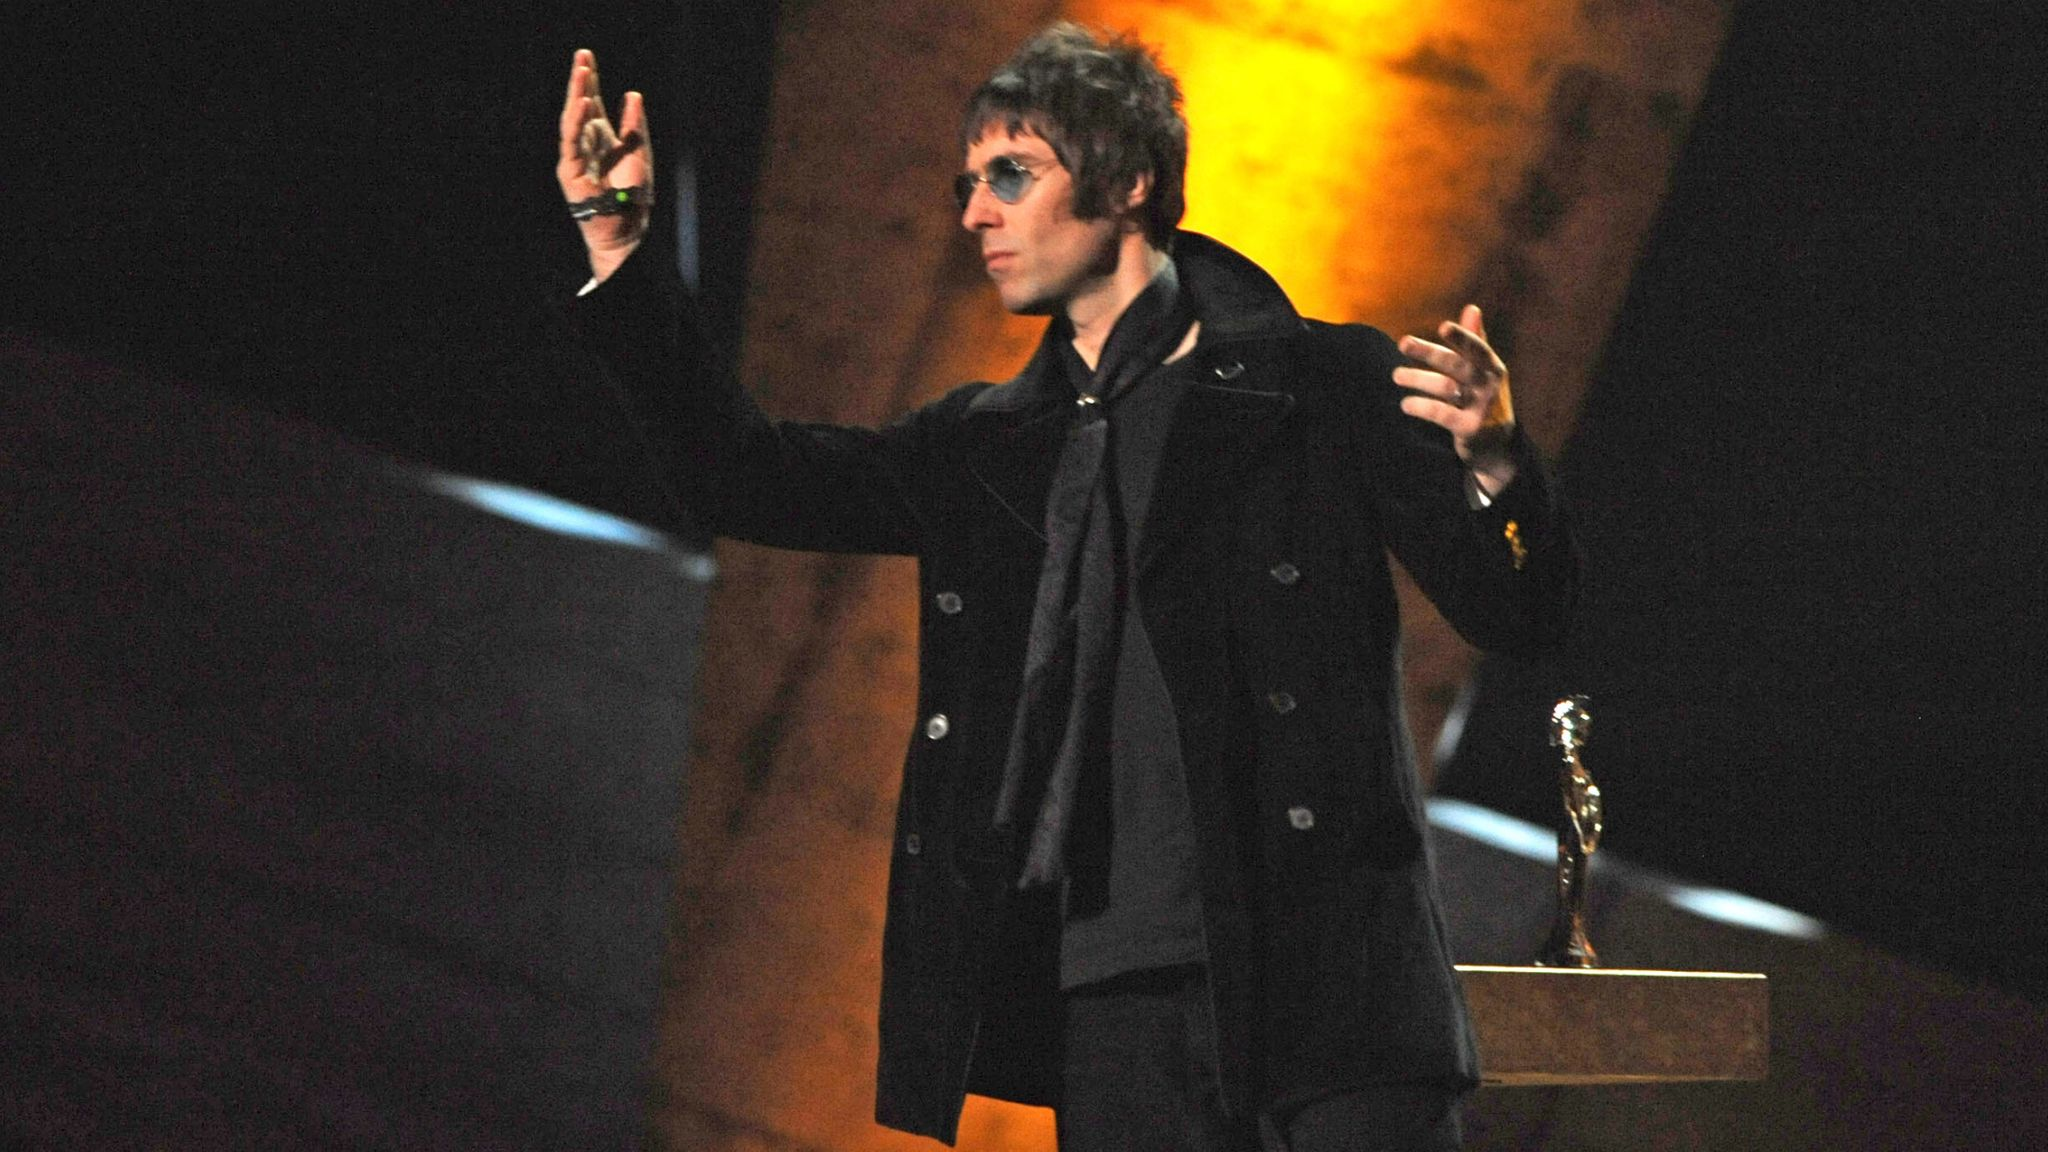 Liam Gallagher in 2010. Pic: Dave M. Benett/Getty Images